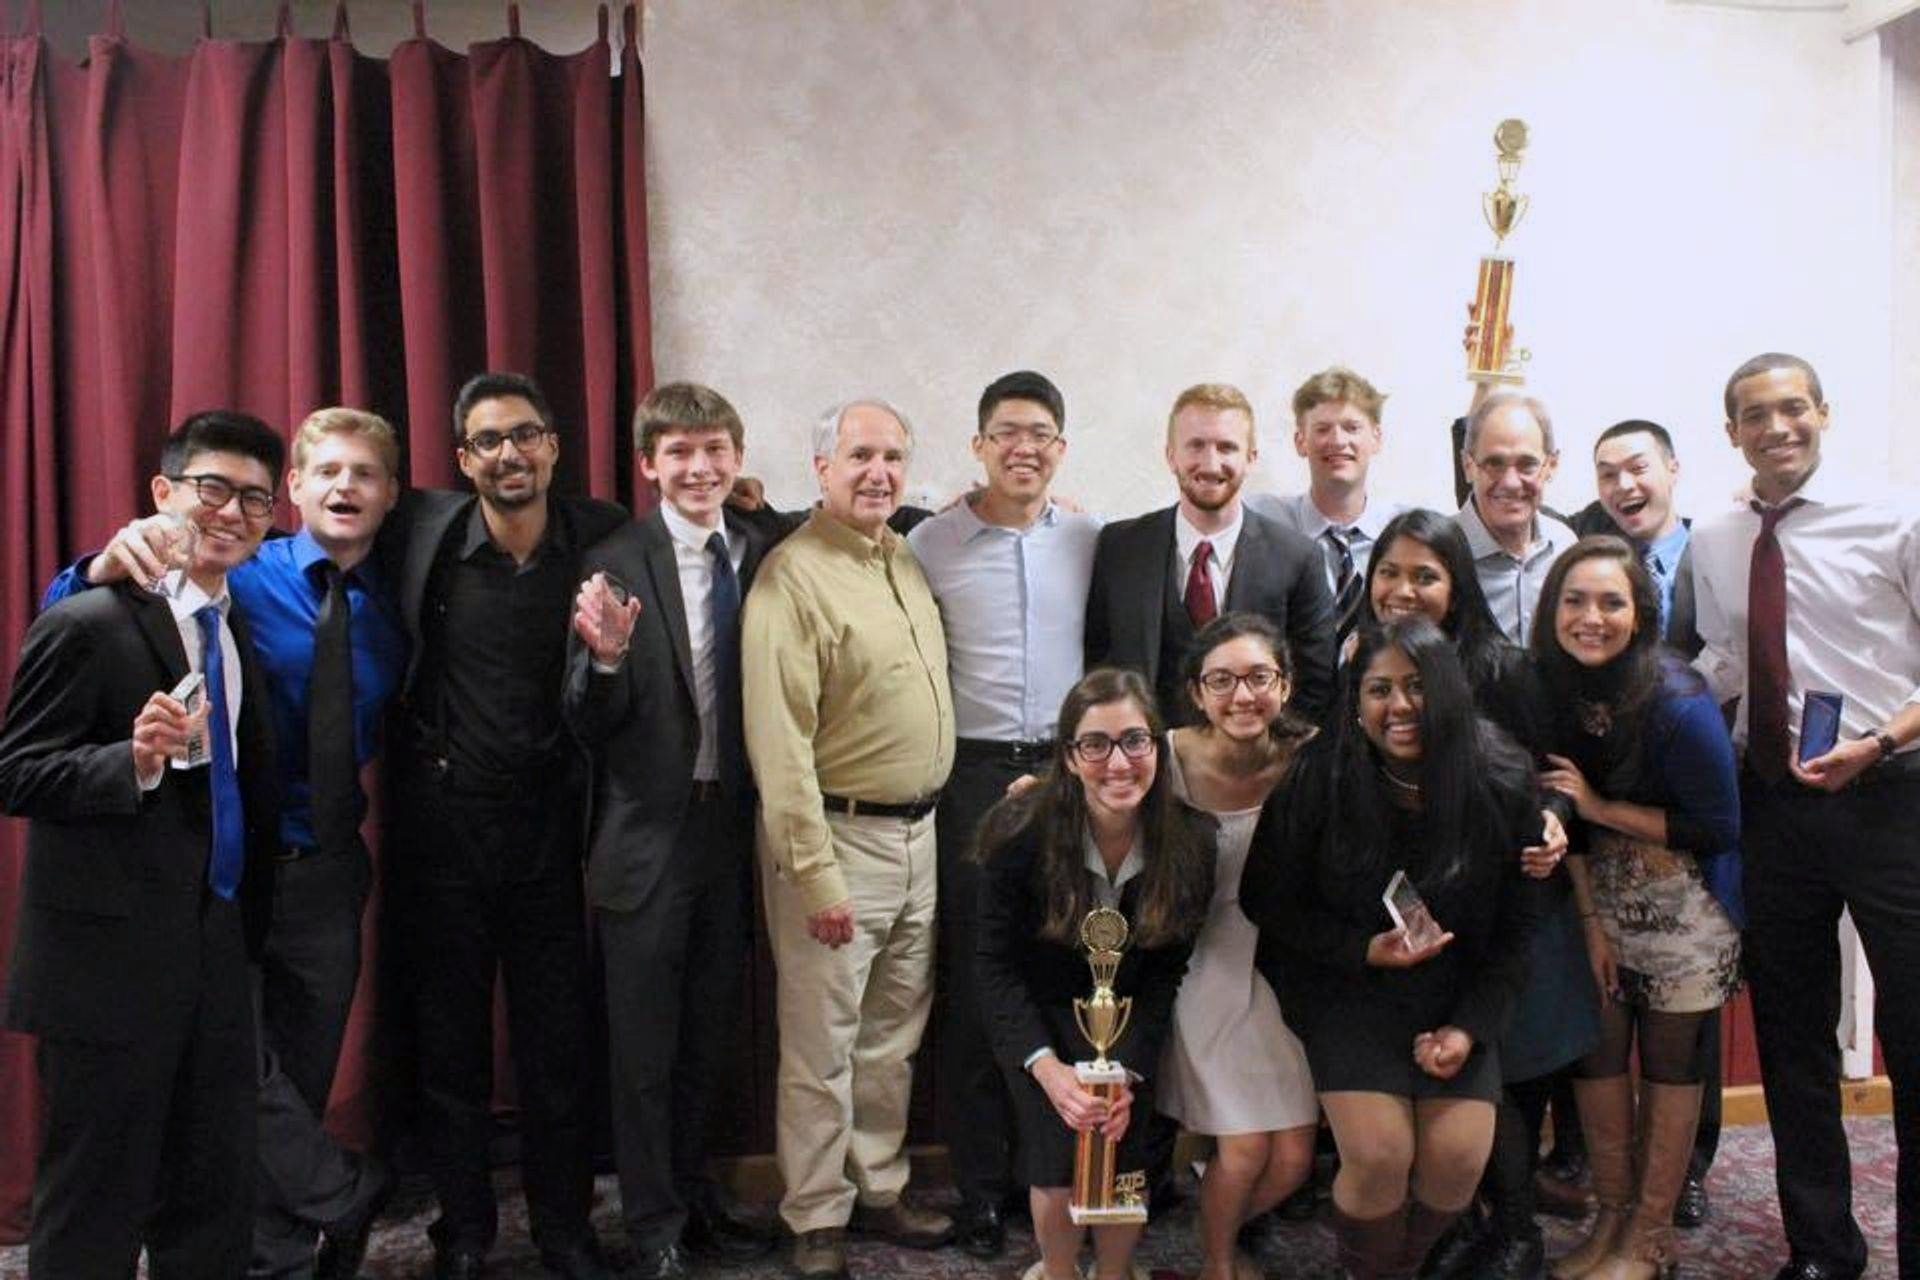 Anoka ORCS (3/13 - 3/15) - TWO GOOD TO BE TRUE! After a great weekend of competition, California Mock Trial qualified TWO teams to the American Mock Trial Association's National Championship Tournament in April! Next up: Cincinnati, Ohio! In addition, the Golden Bears swept in the individual category, taking home a total of 6 awards:Justin Tsung, Outstanding Witness with 16/20 ranksRadhika Kannan, All-National Witness with 16/20 ranksVaughn Okerlund, All-National Witness with 17/20 ranksNisha Srinivasa, All-National Witness with 17/20 ranksJaycob Rousey, All-National Attorney with 17/20 ranksBrandon Thomas, All-National Attorney with 18/20 ranks